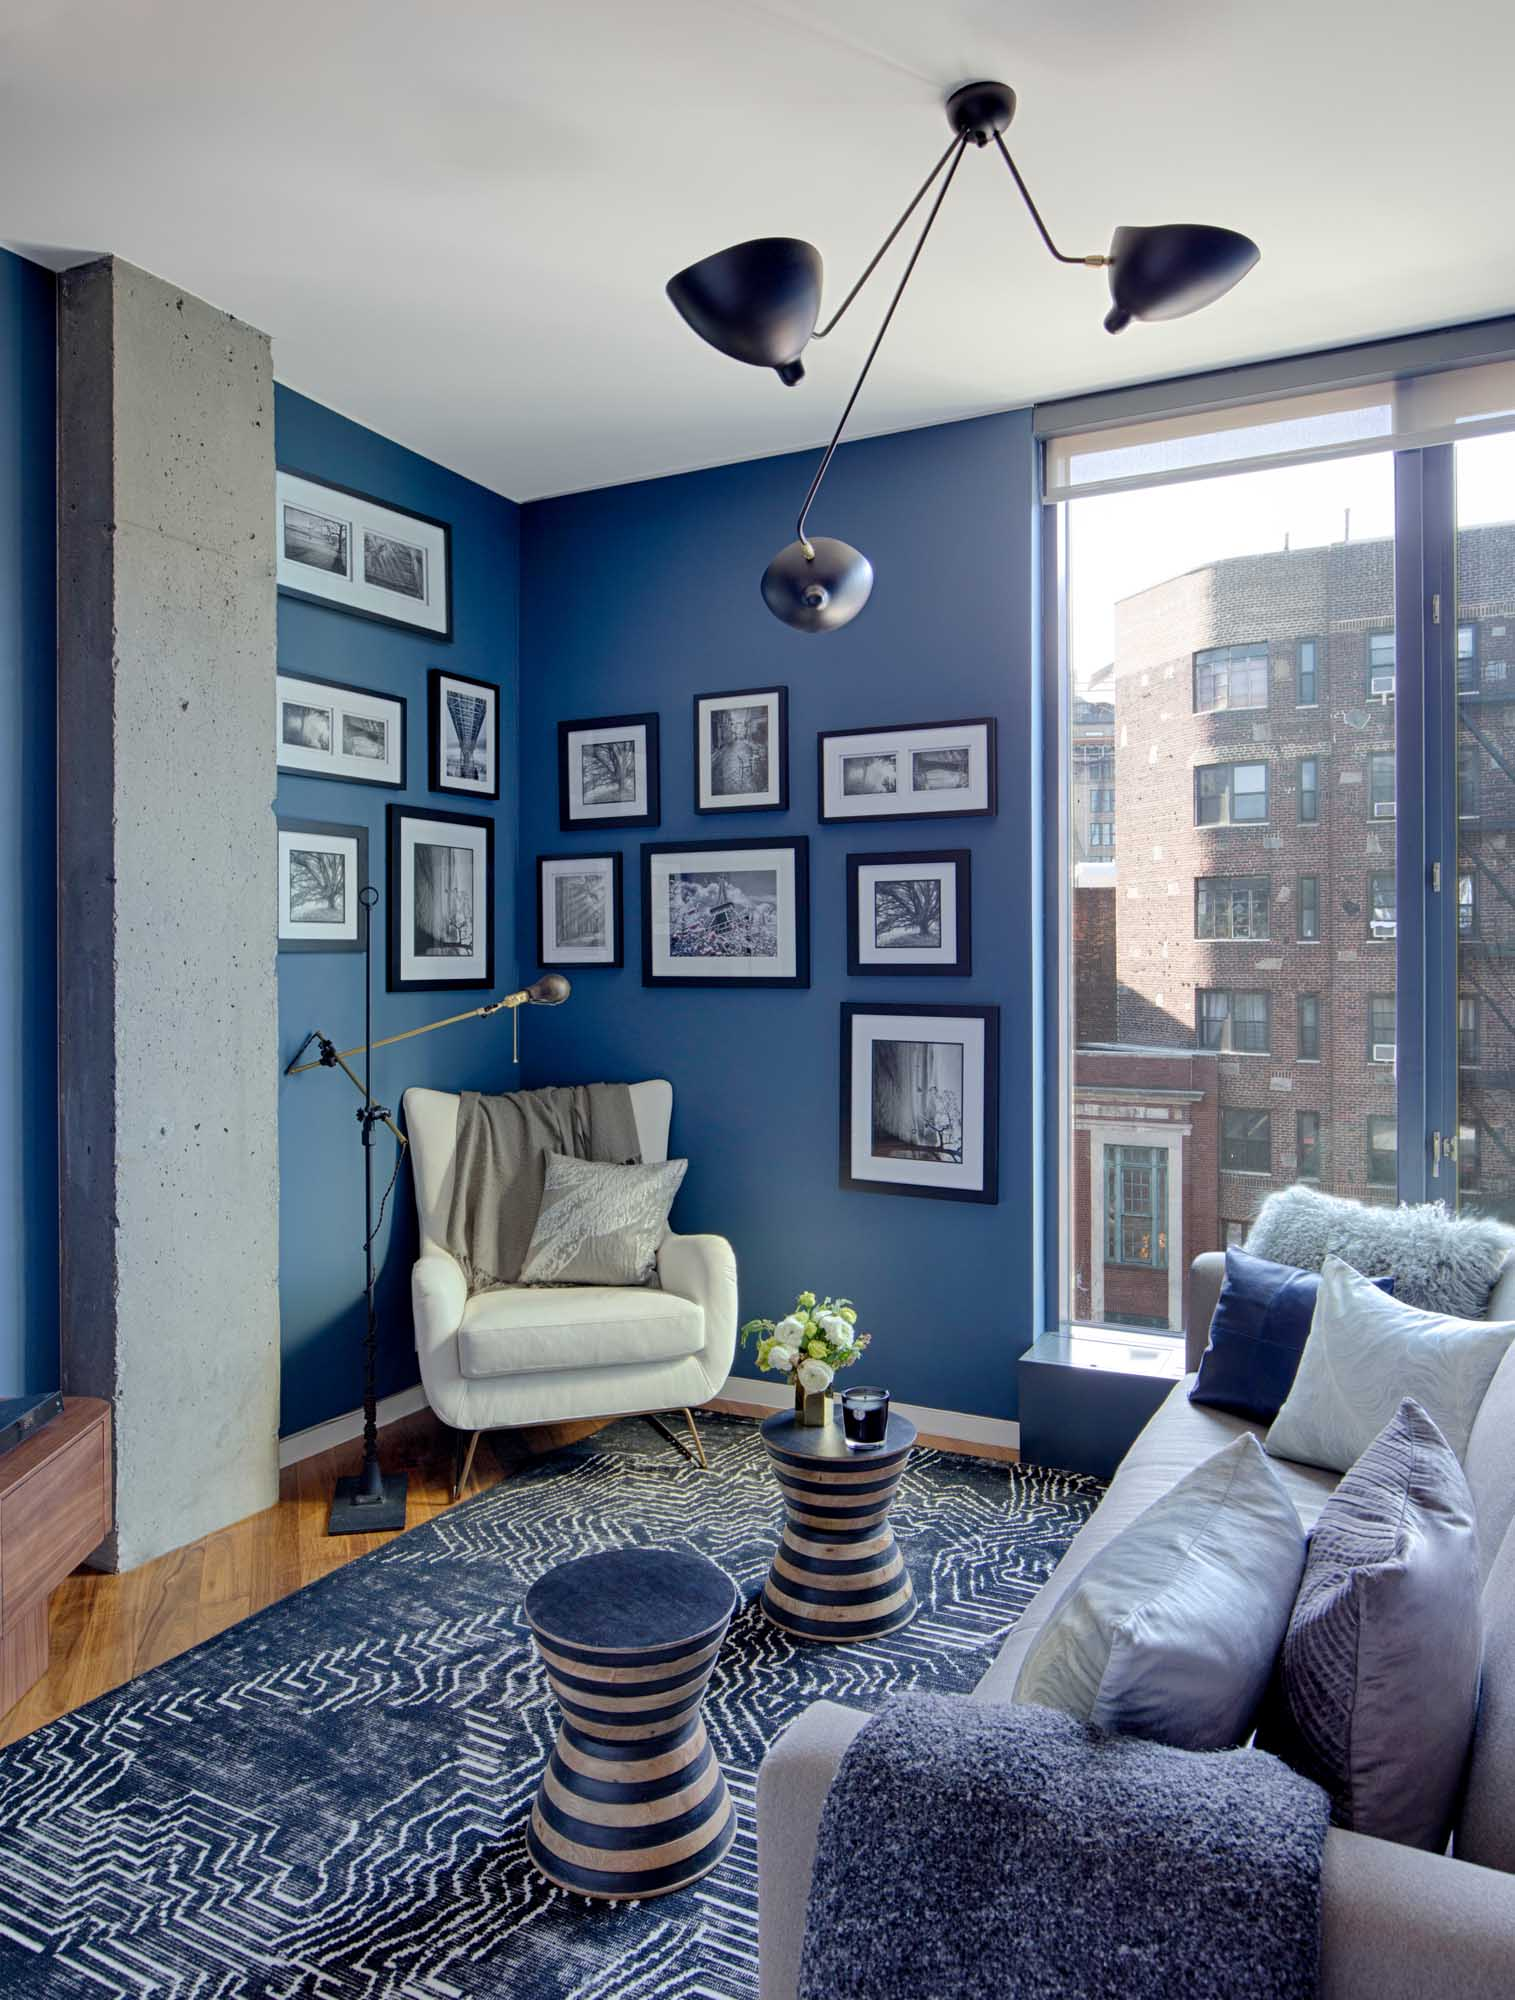 modern design living room with white and blue theme, paintings hanging on the wall, stylish lamp on the ceiling and large window